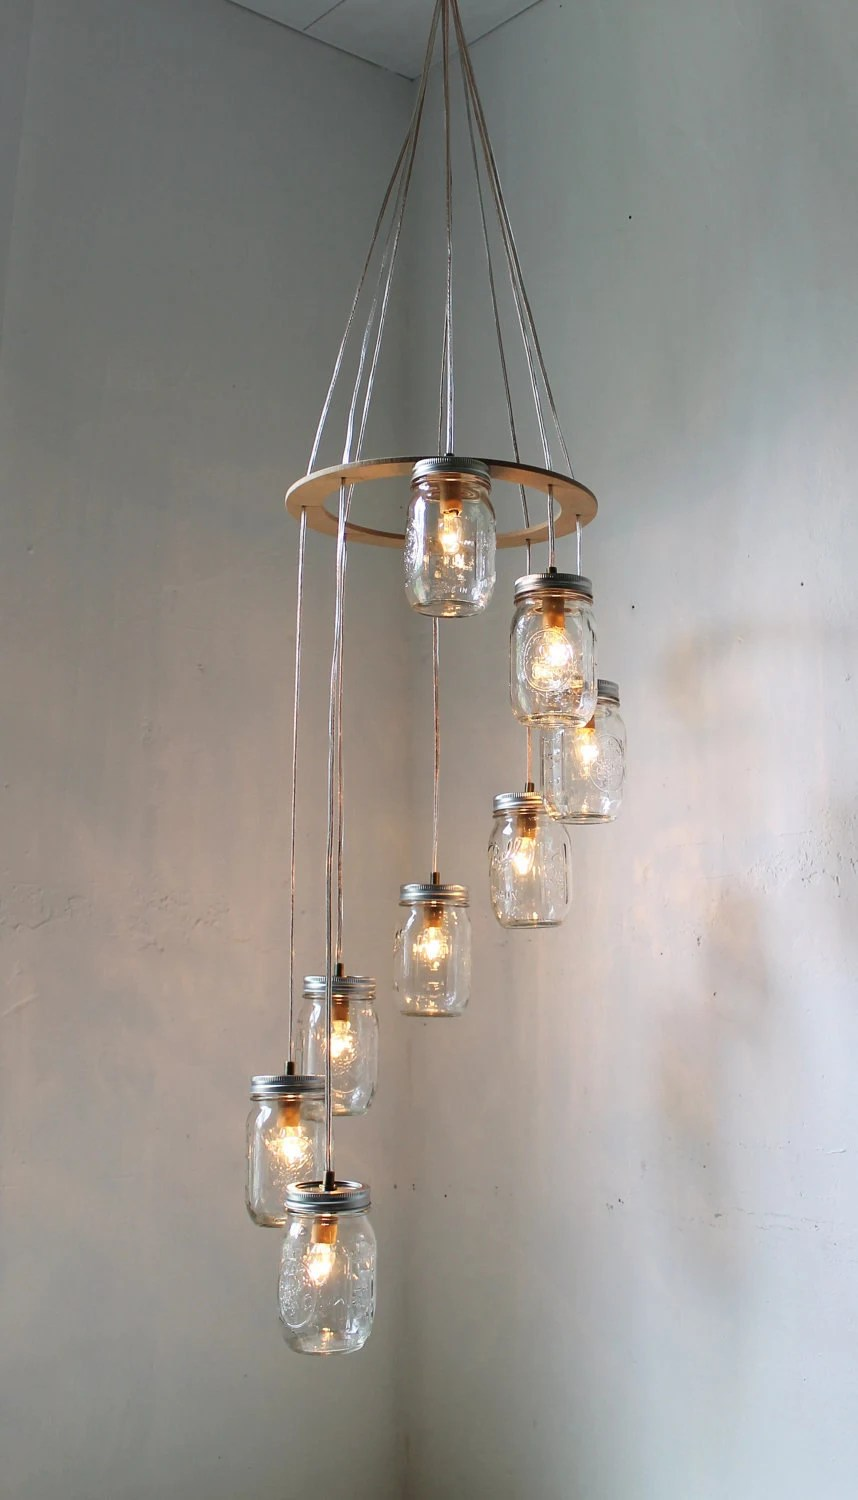 Spiral Mason Jar Carousel Chandelier Hanging Light  - Mason Jar Lighting - Eco Friendly Rustic Wedding - Original BootsNGus Design